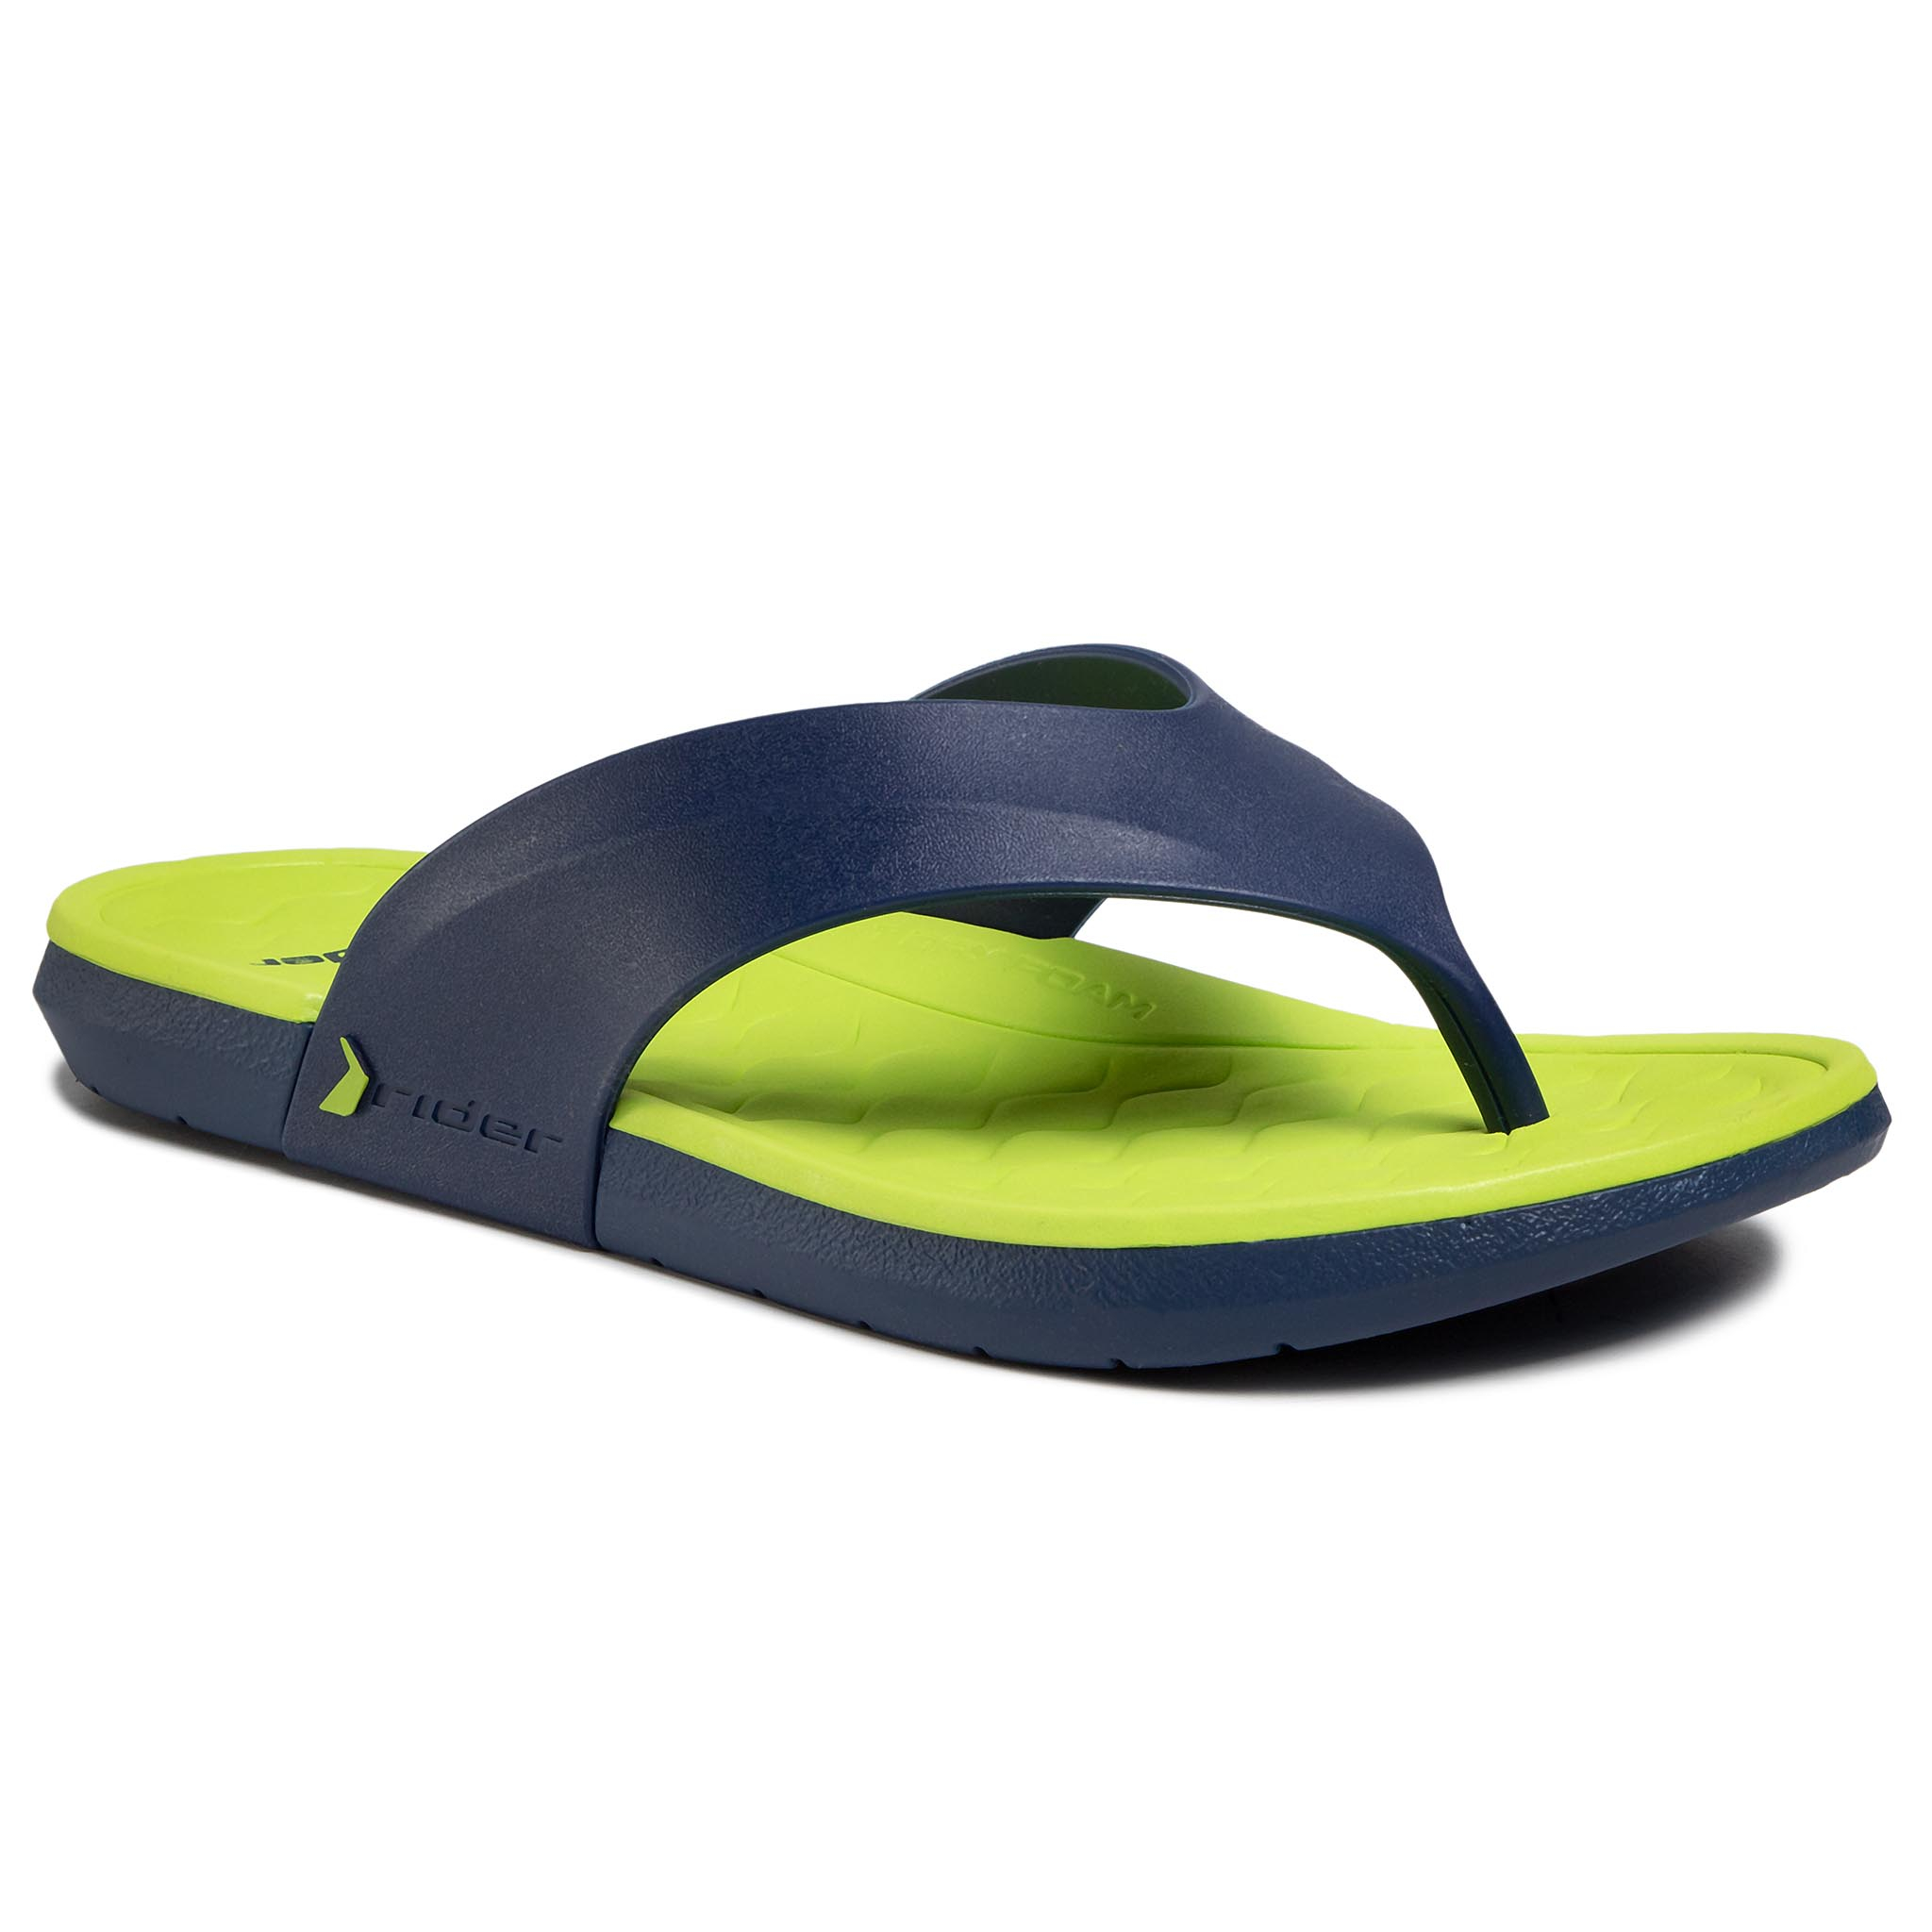 Flip Flop Rider - Infinity Iii Thong Ad 82732 Blue/Green 23563 imagine